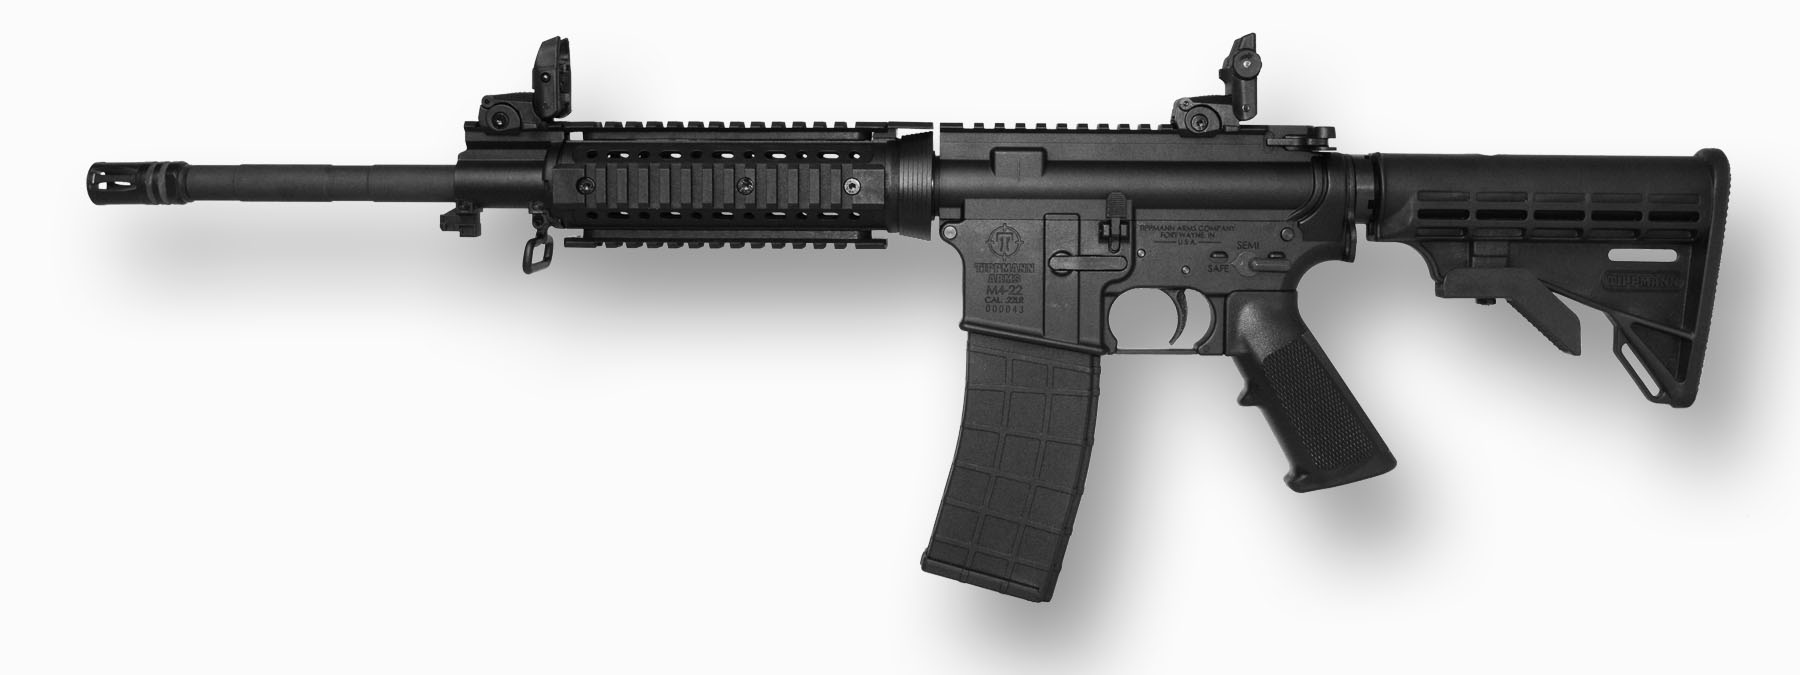 Tippmann Is Making More Than Paintball Guns These Days Page 1 Ar15 Com